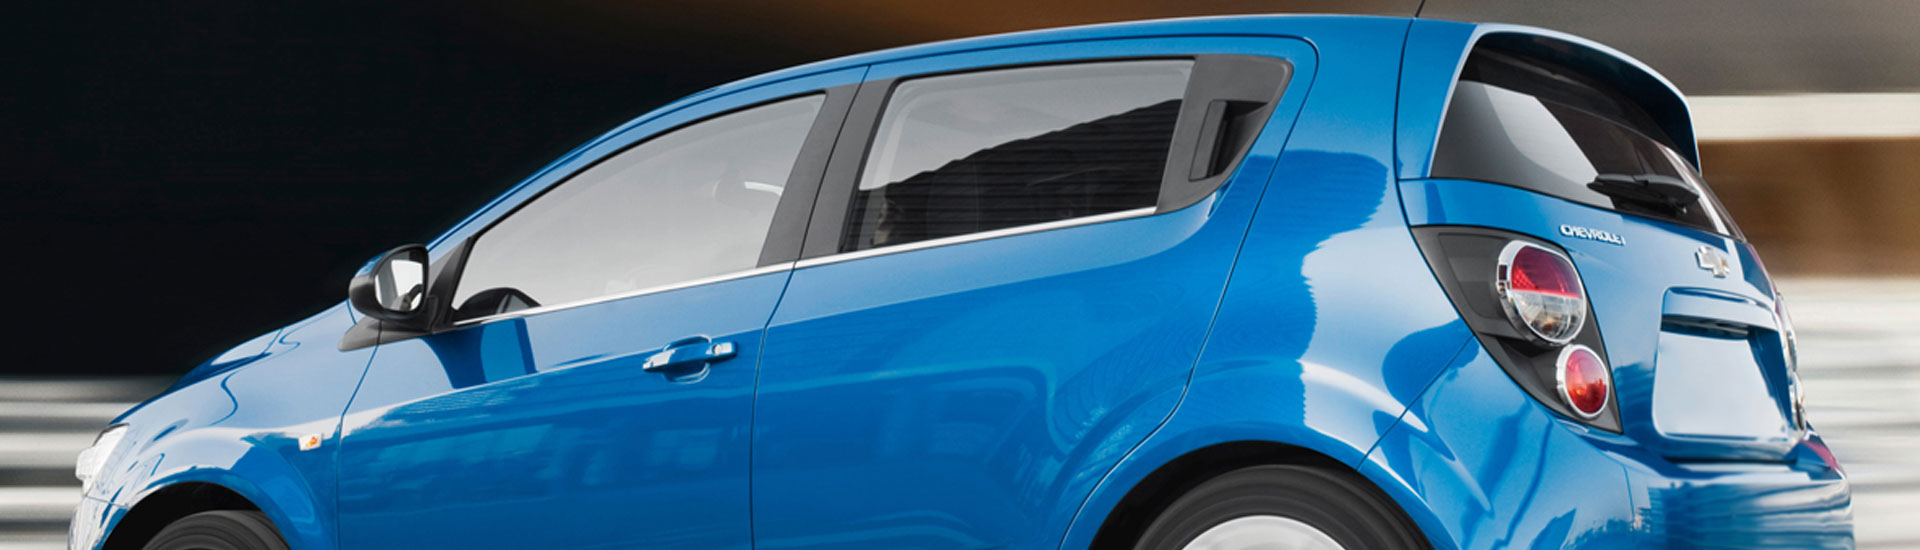 Chevrolet Aveo Window Tint